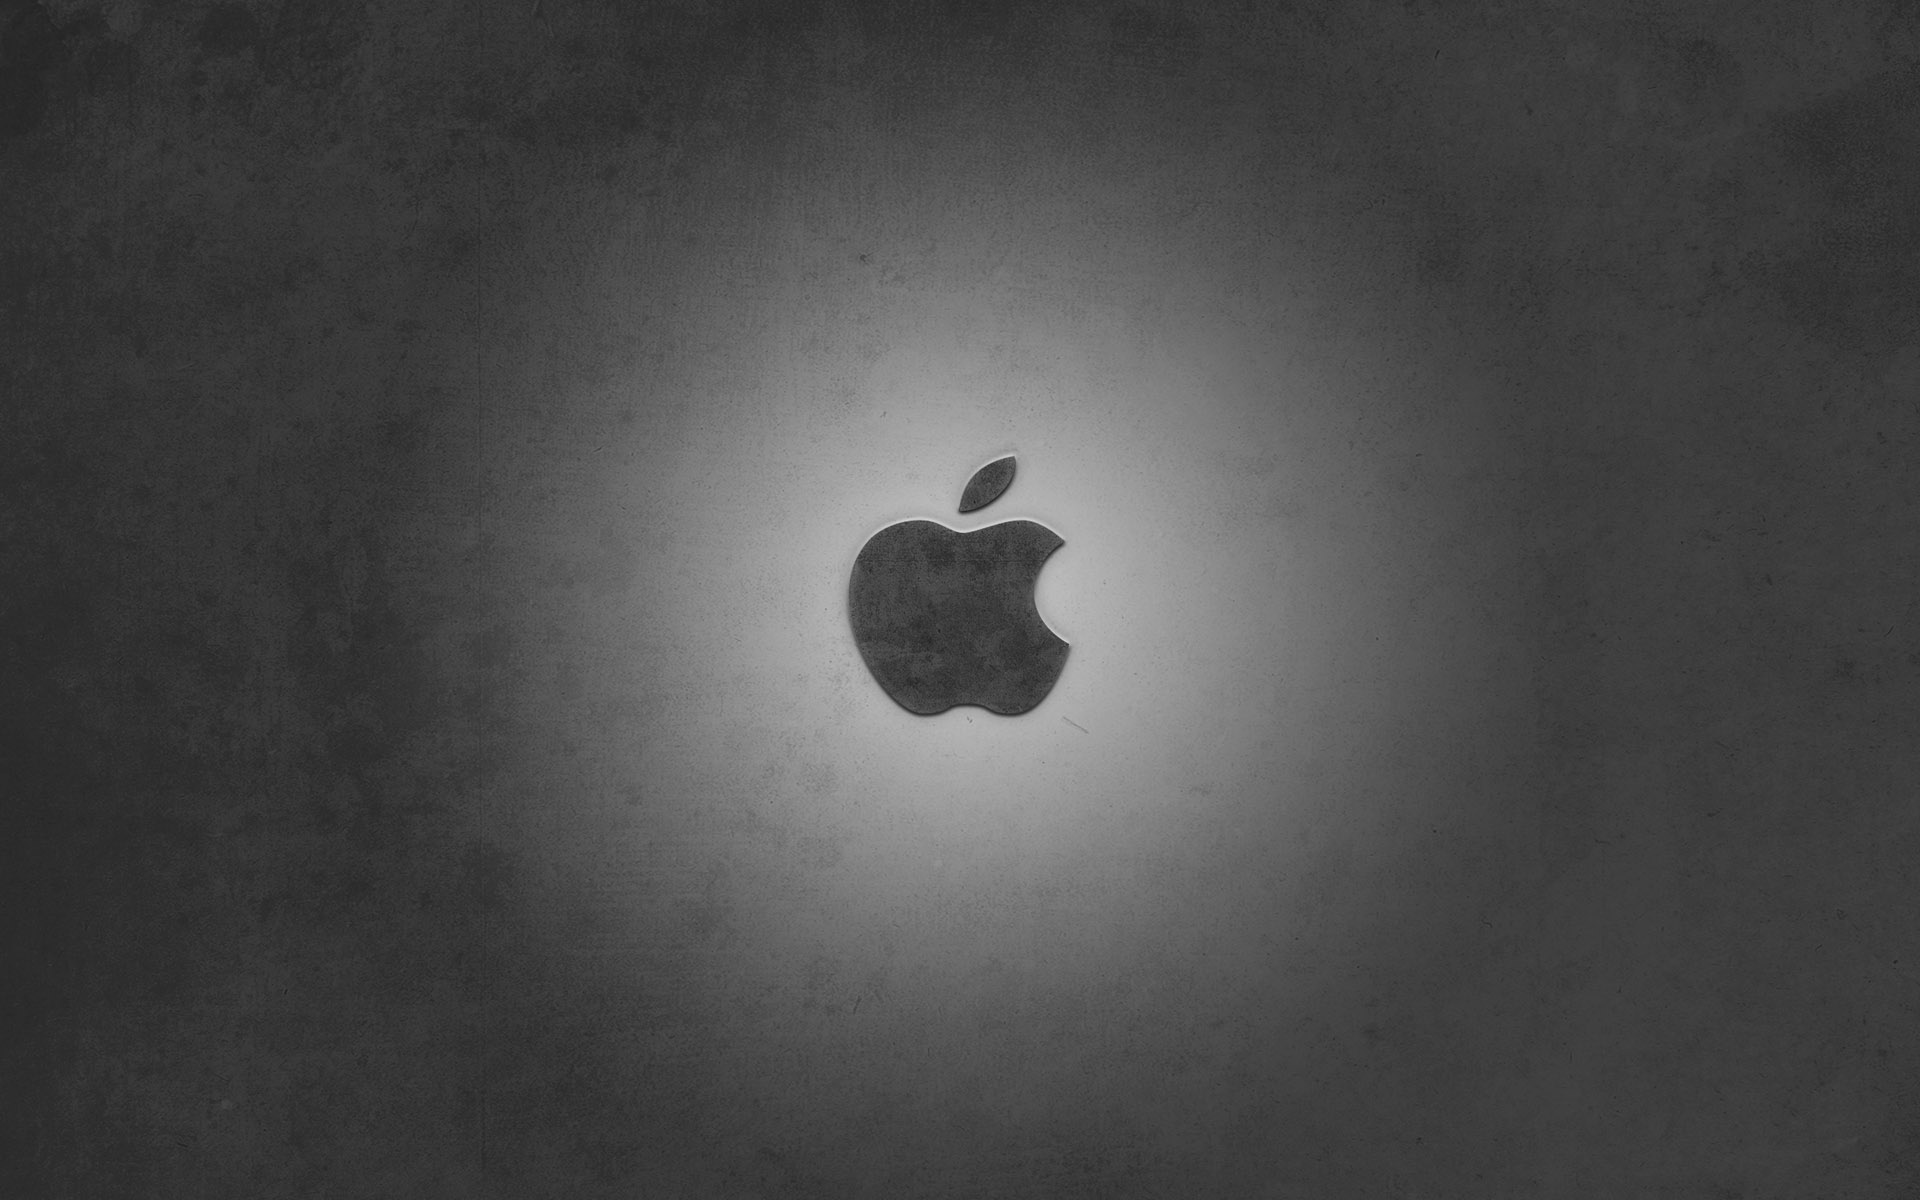 HD Apple wallpaper 18238